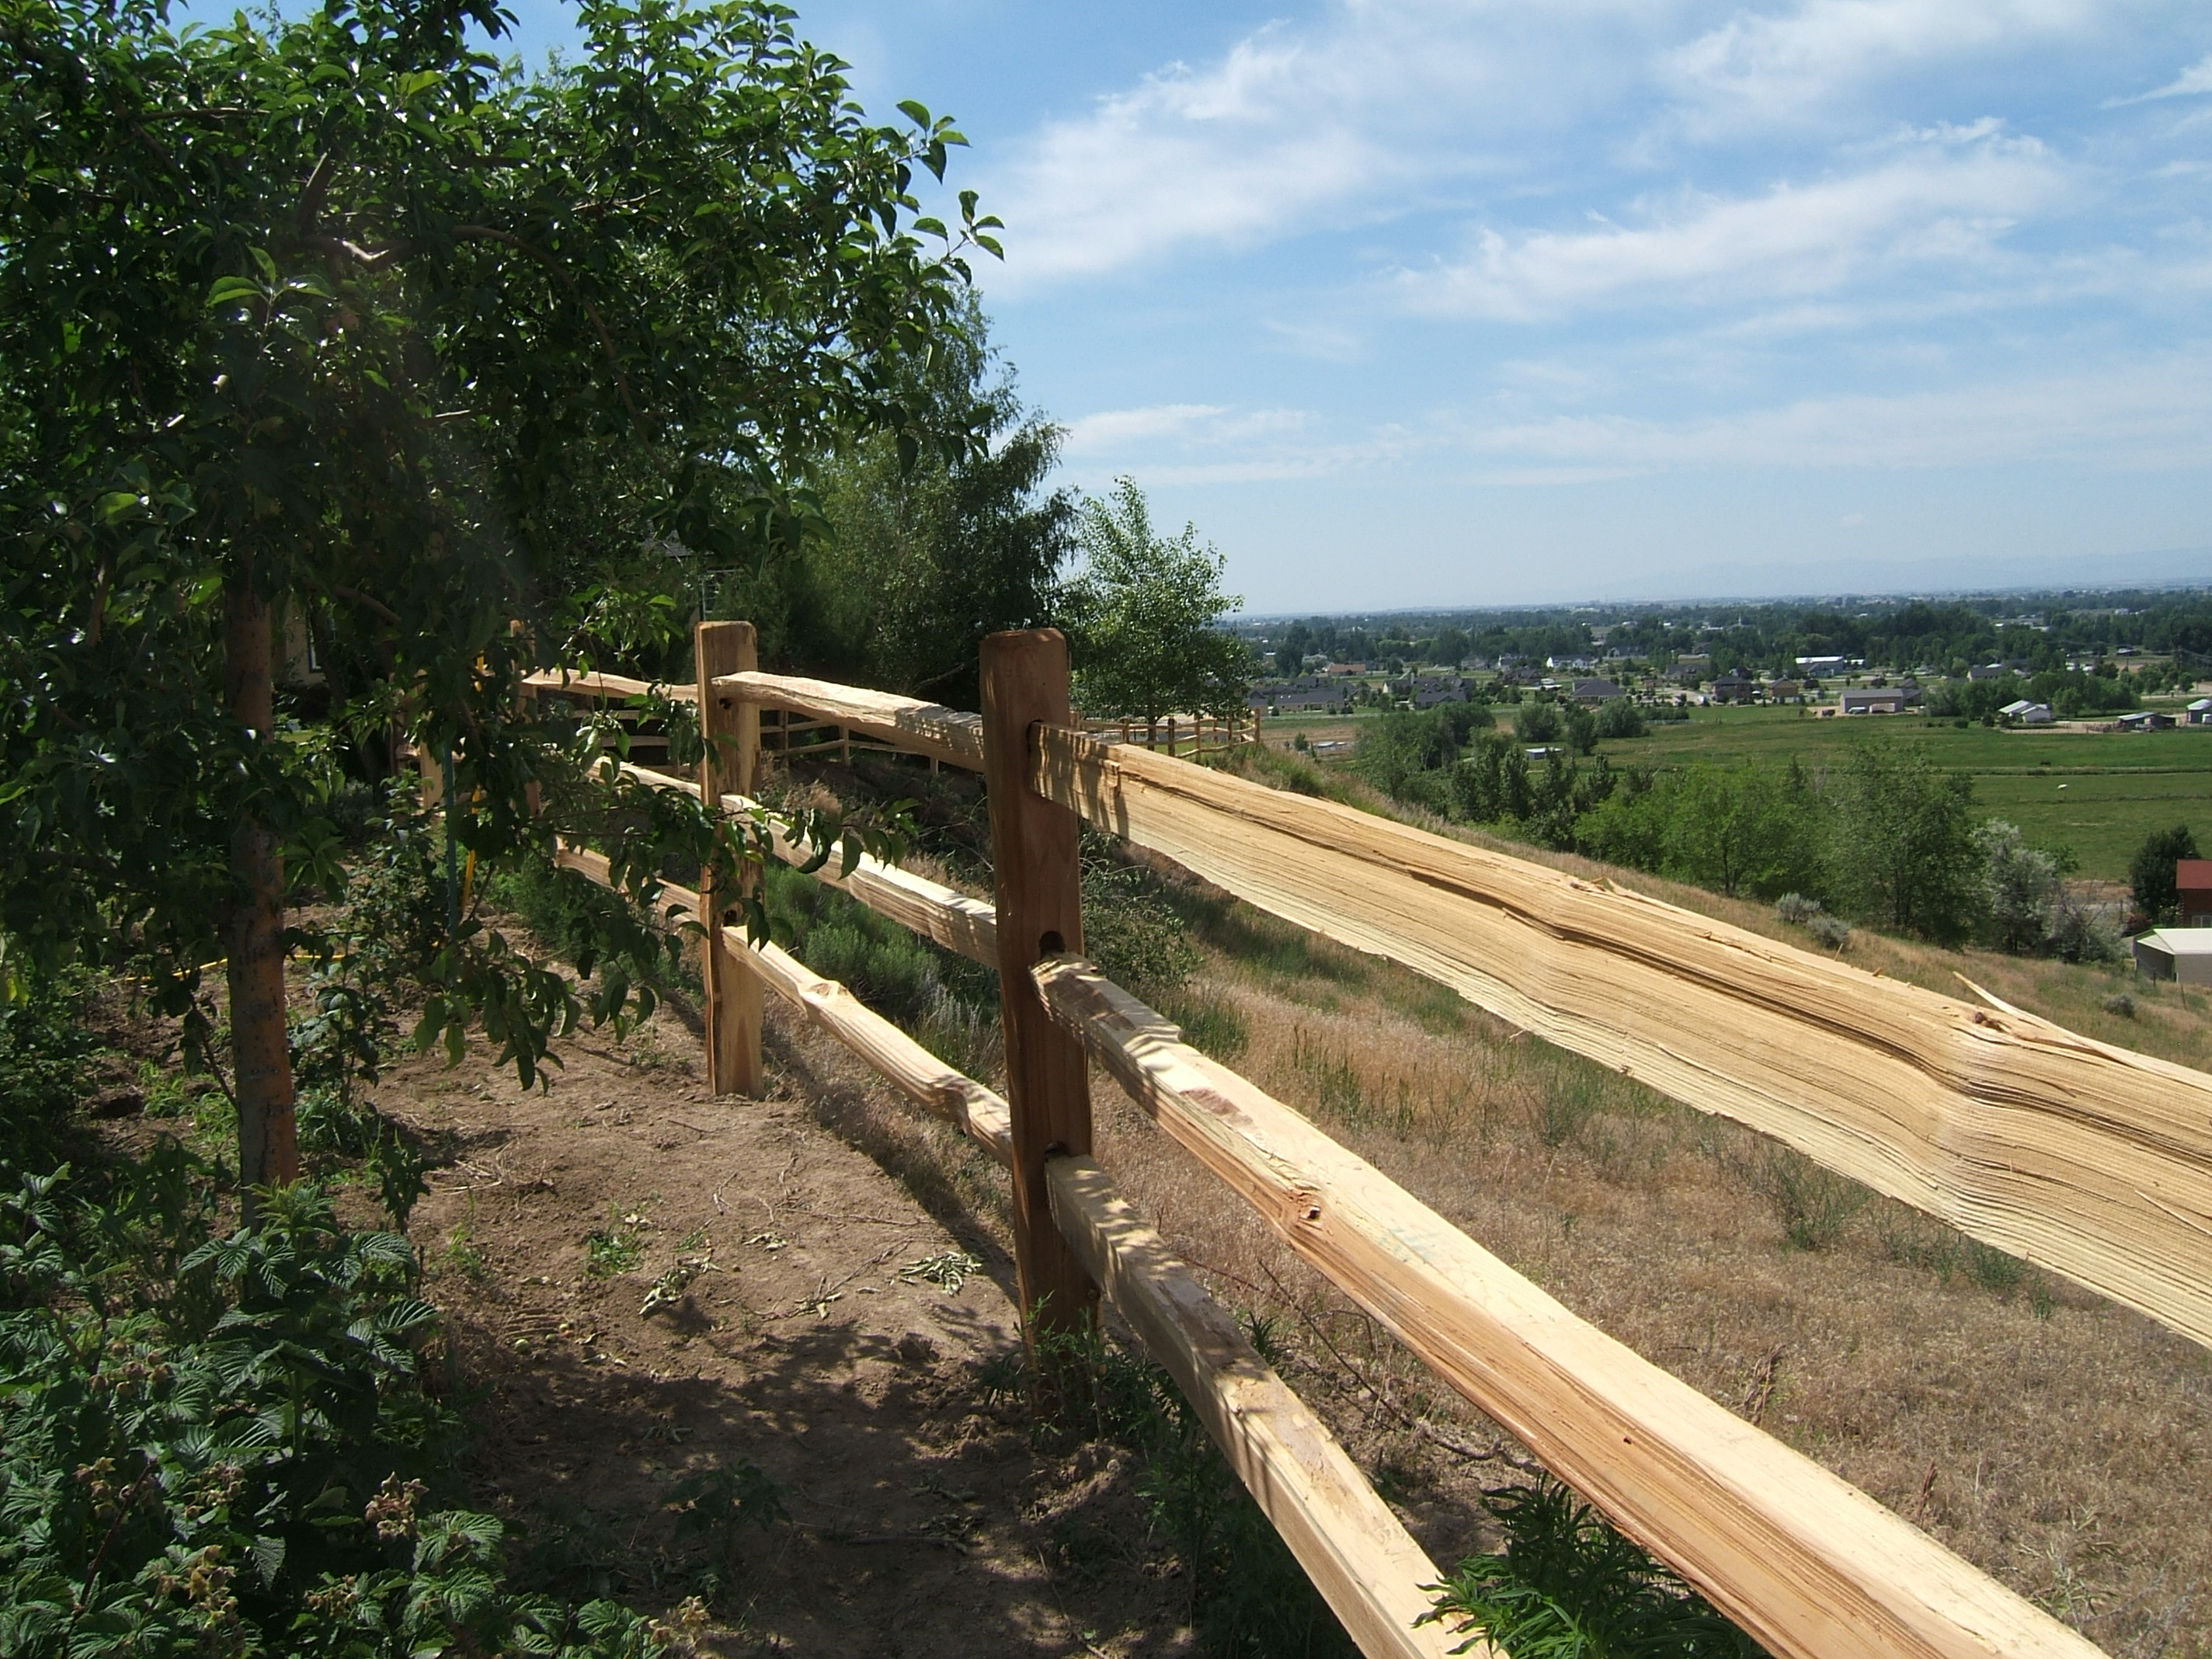 Fencing Split Cedar Fences Parma Post And Pole